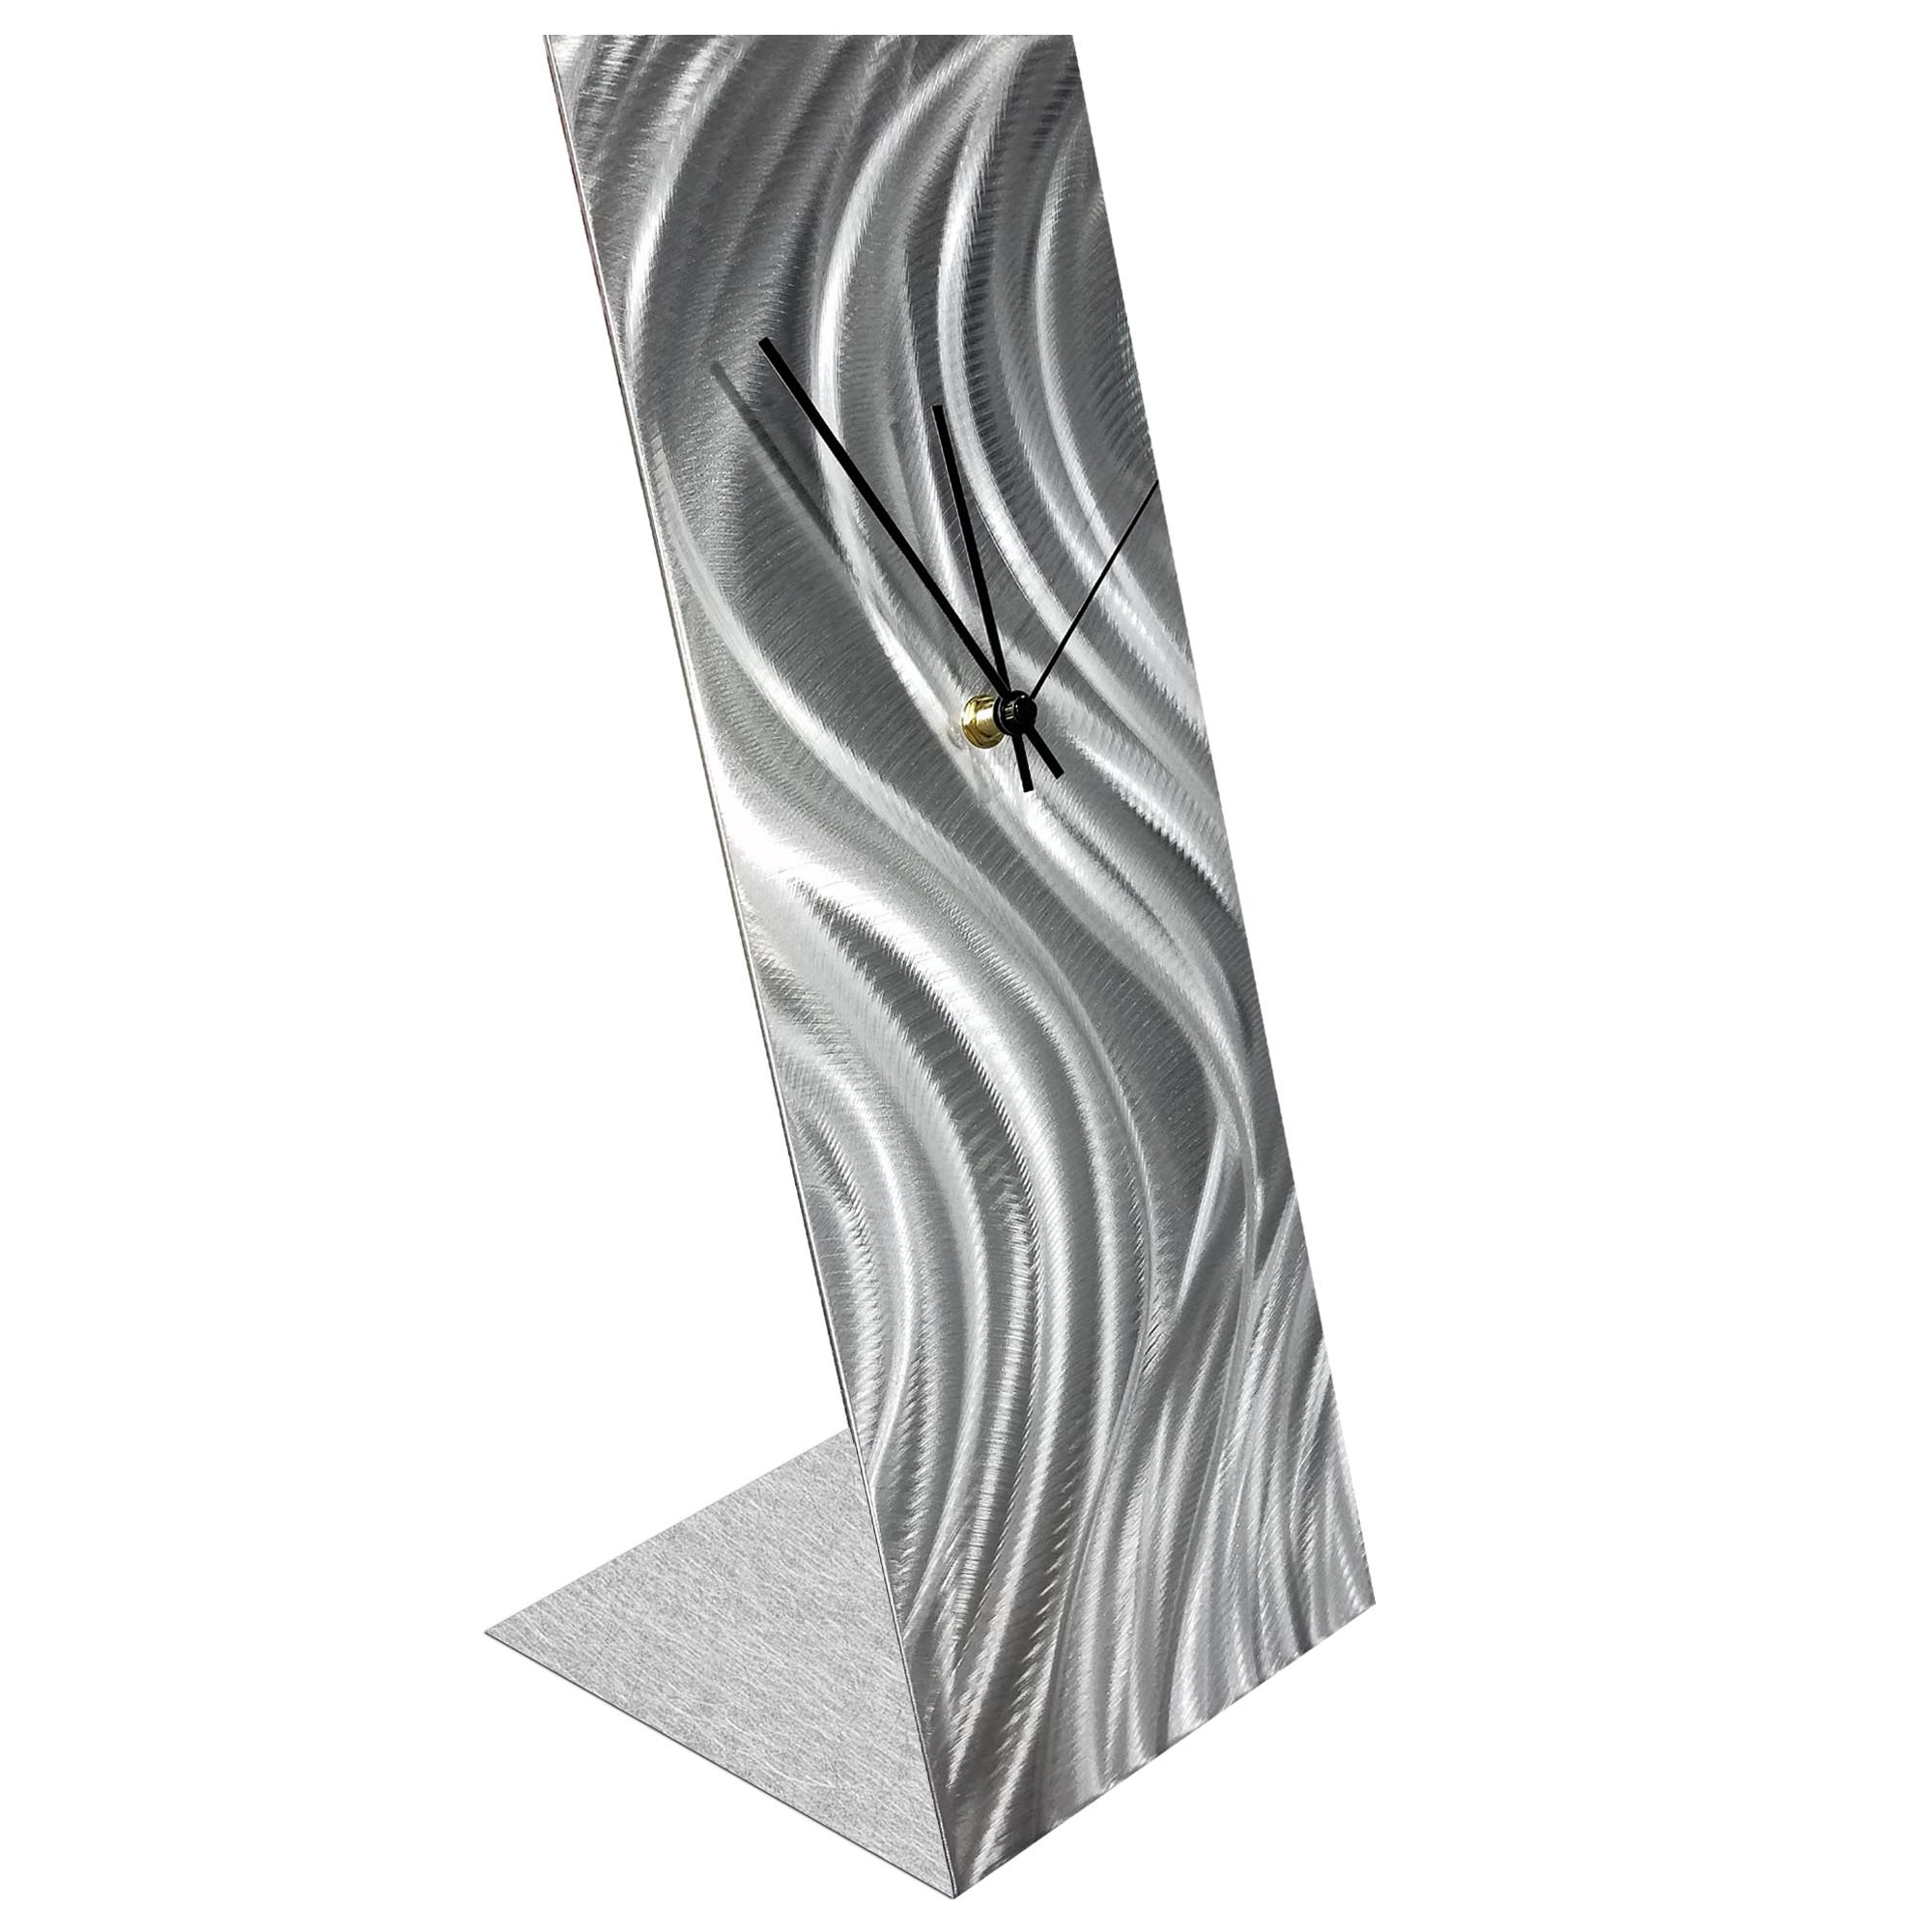 Silver River Desk Clock by Helena Martin Modern Table Clock on Natural Aluminum - Image 2